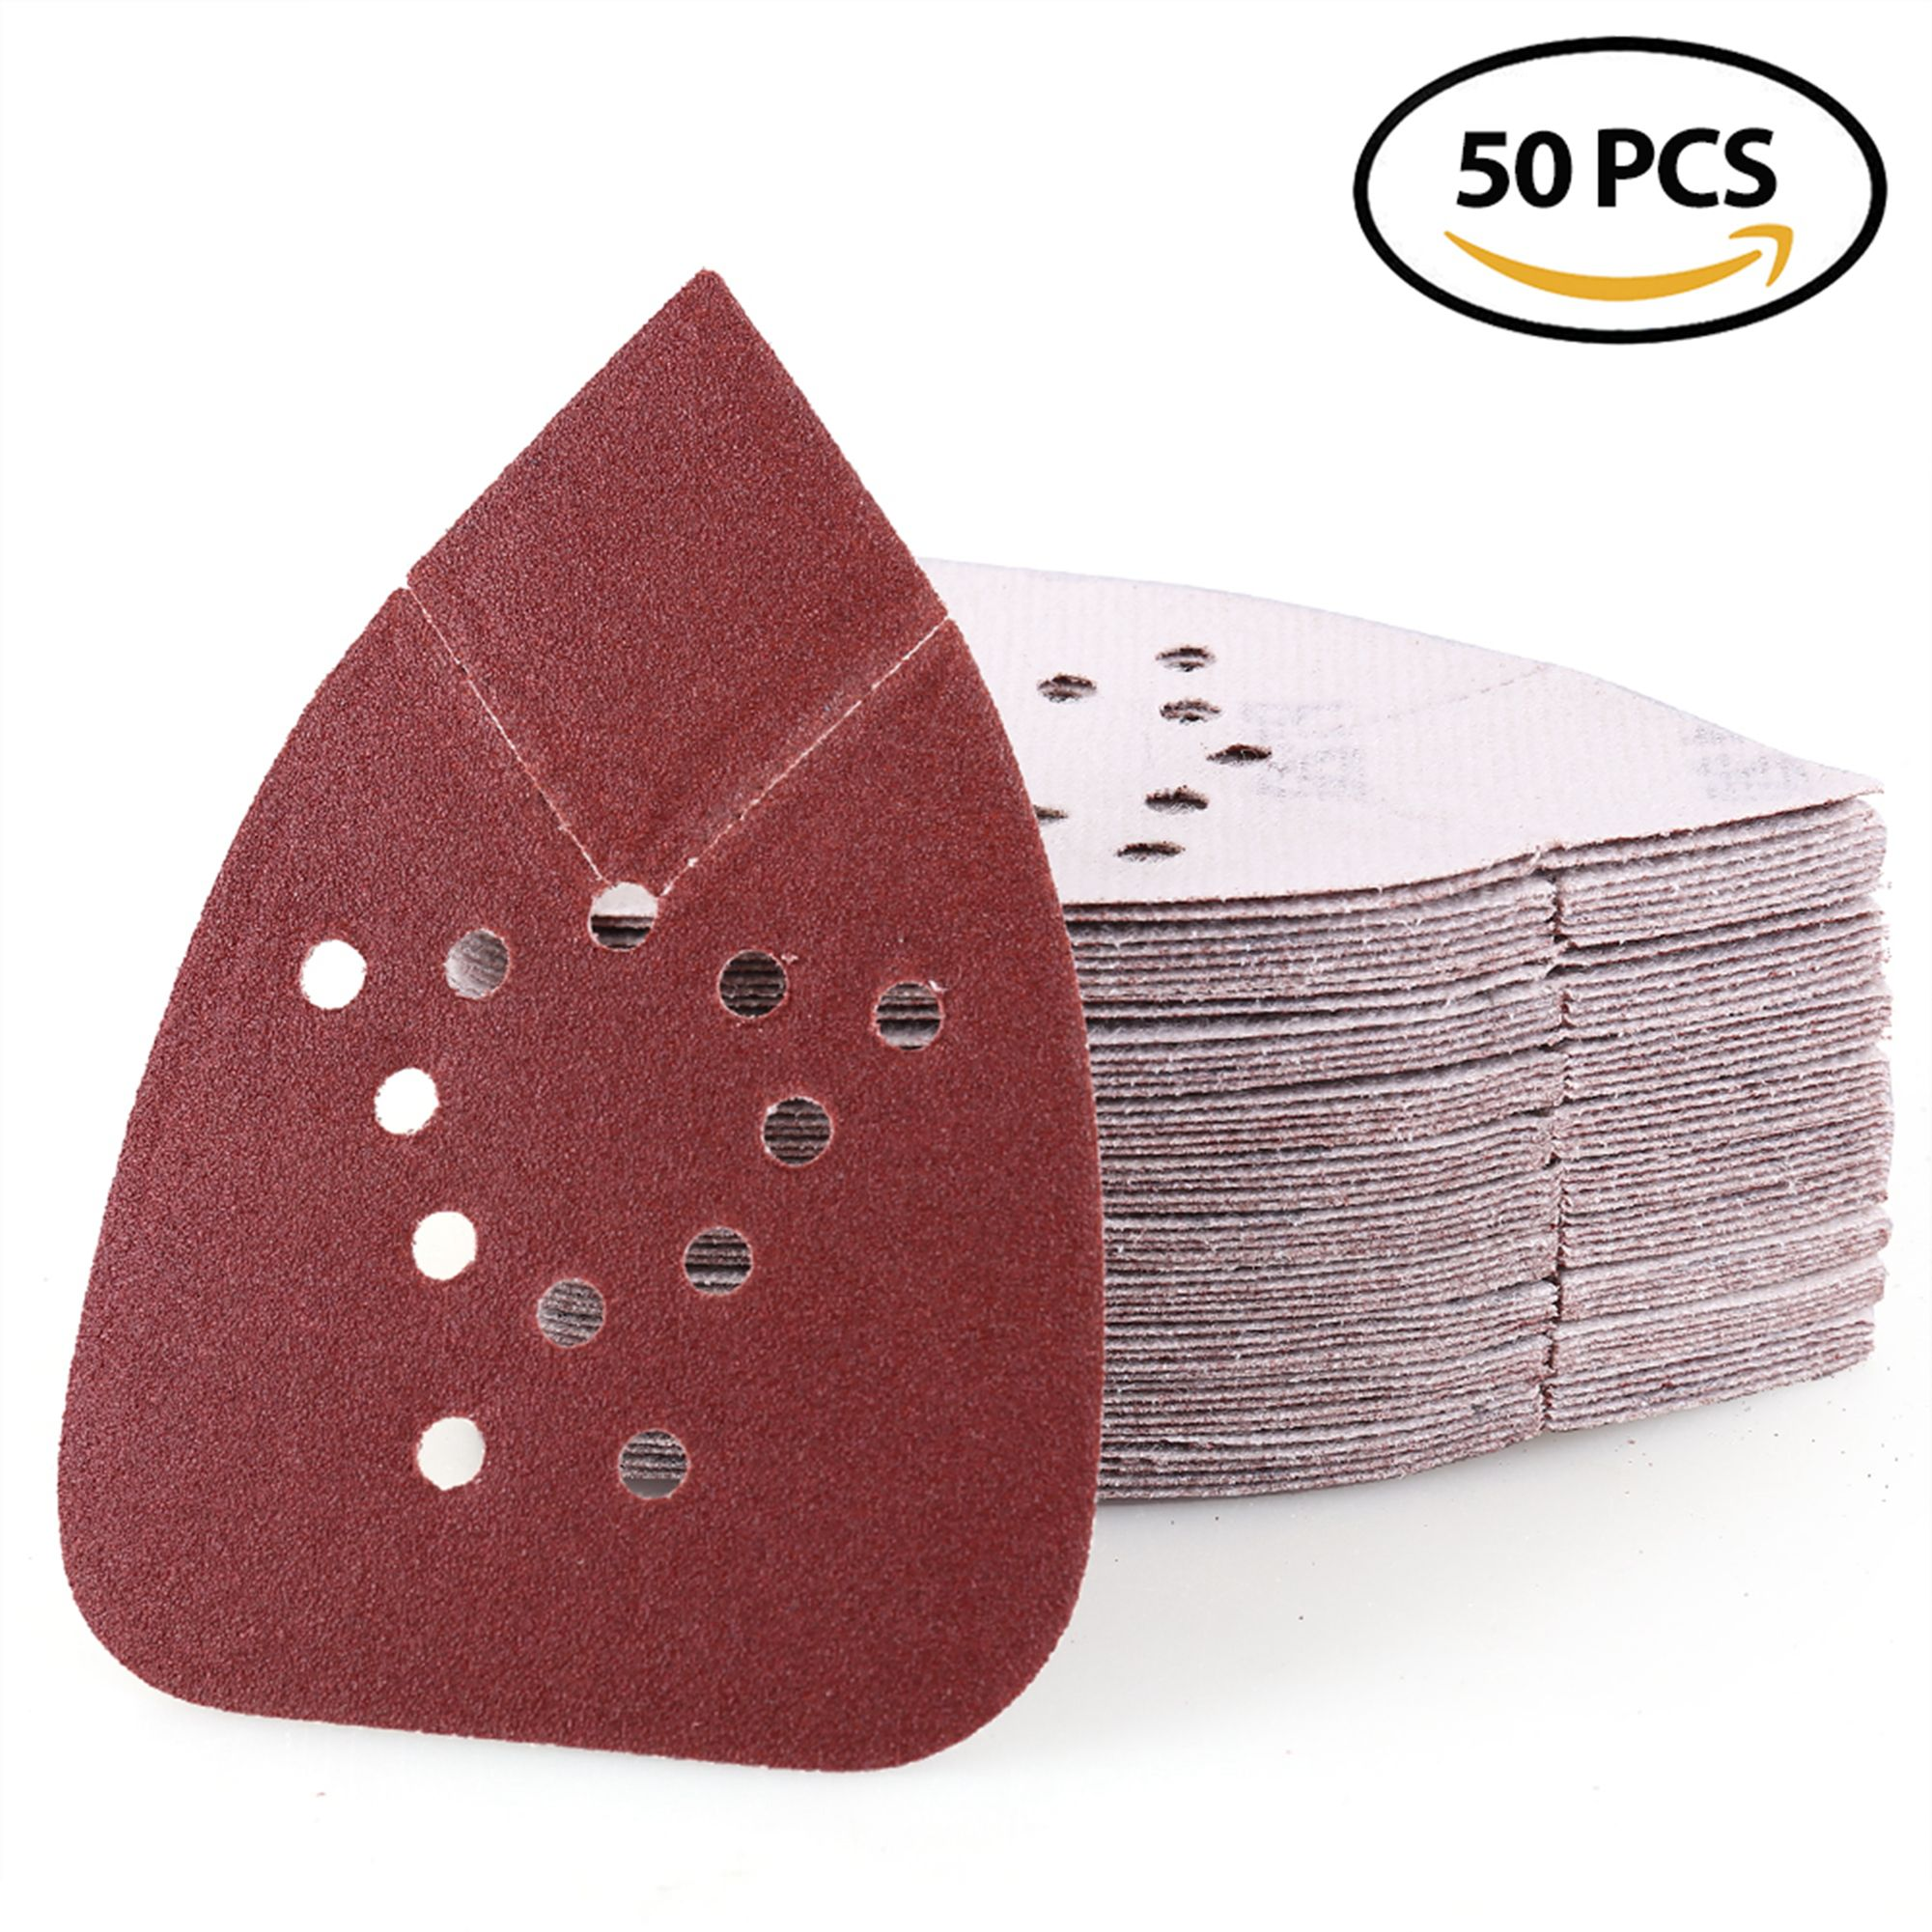 Sanding Sheets 120 Grit Hook and Loop Sandpaper - LotFancy 12 Holes Mouse Detail Palm Sander Paper, Pack of 50